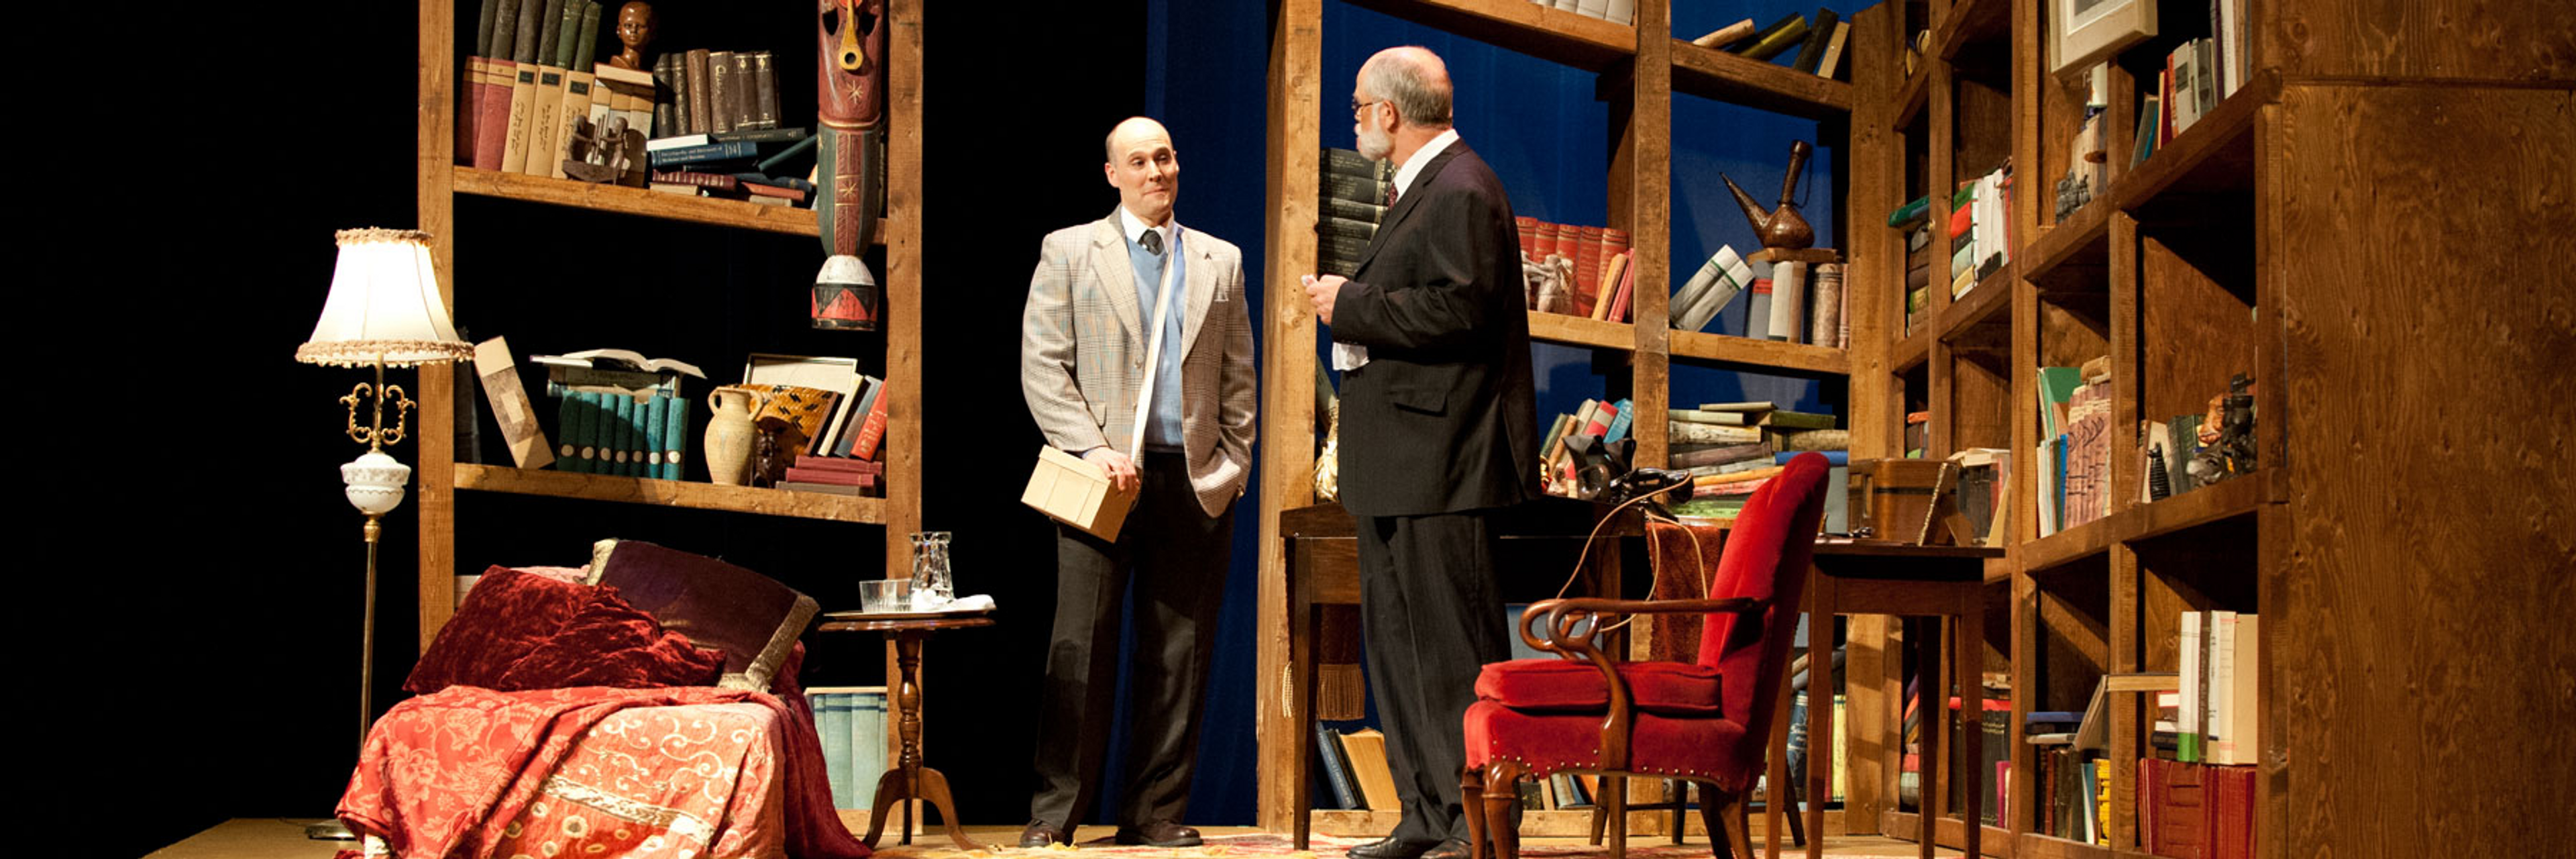 Freud's Last Session on stage, with Freud and CS Lewis standing mid-stage smiling at each other.